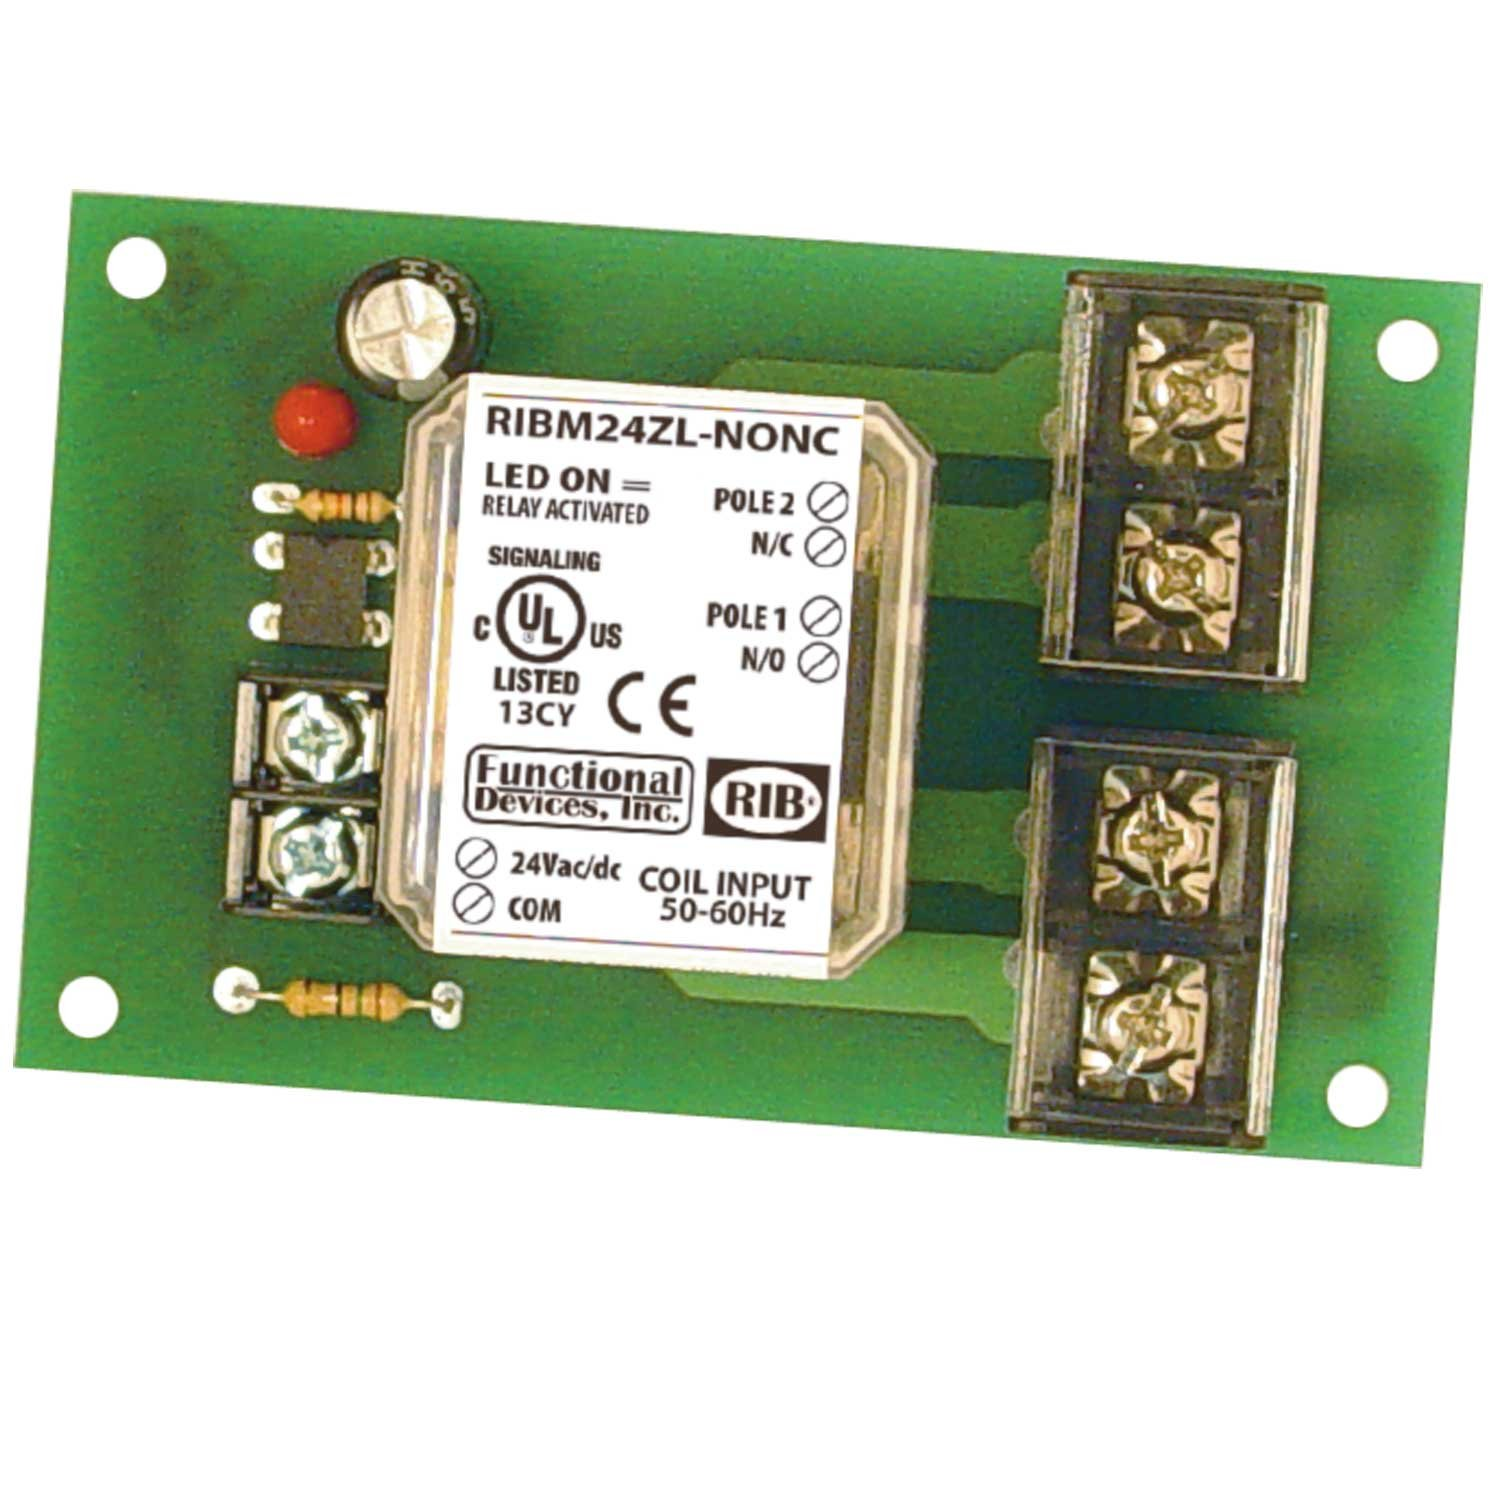 Panel Relay 4.00x2.35in 30Amp DPST-NONC 24Vac/dc